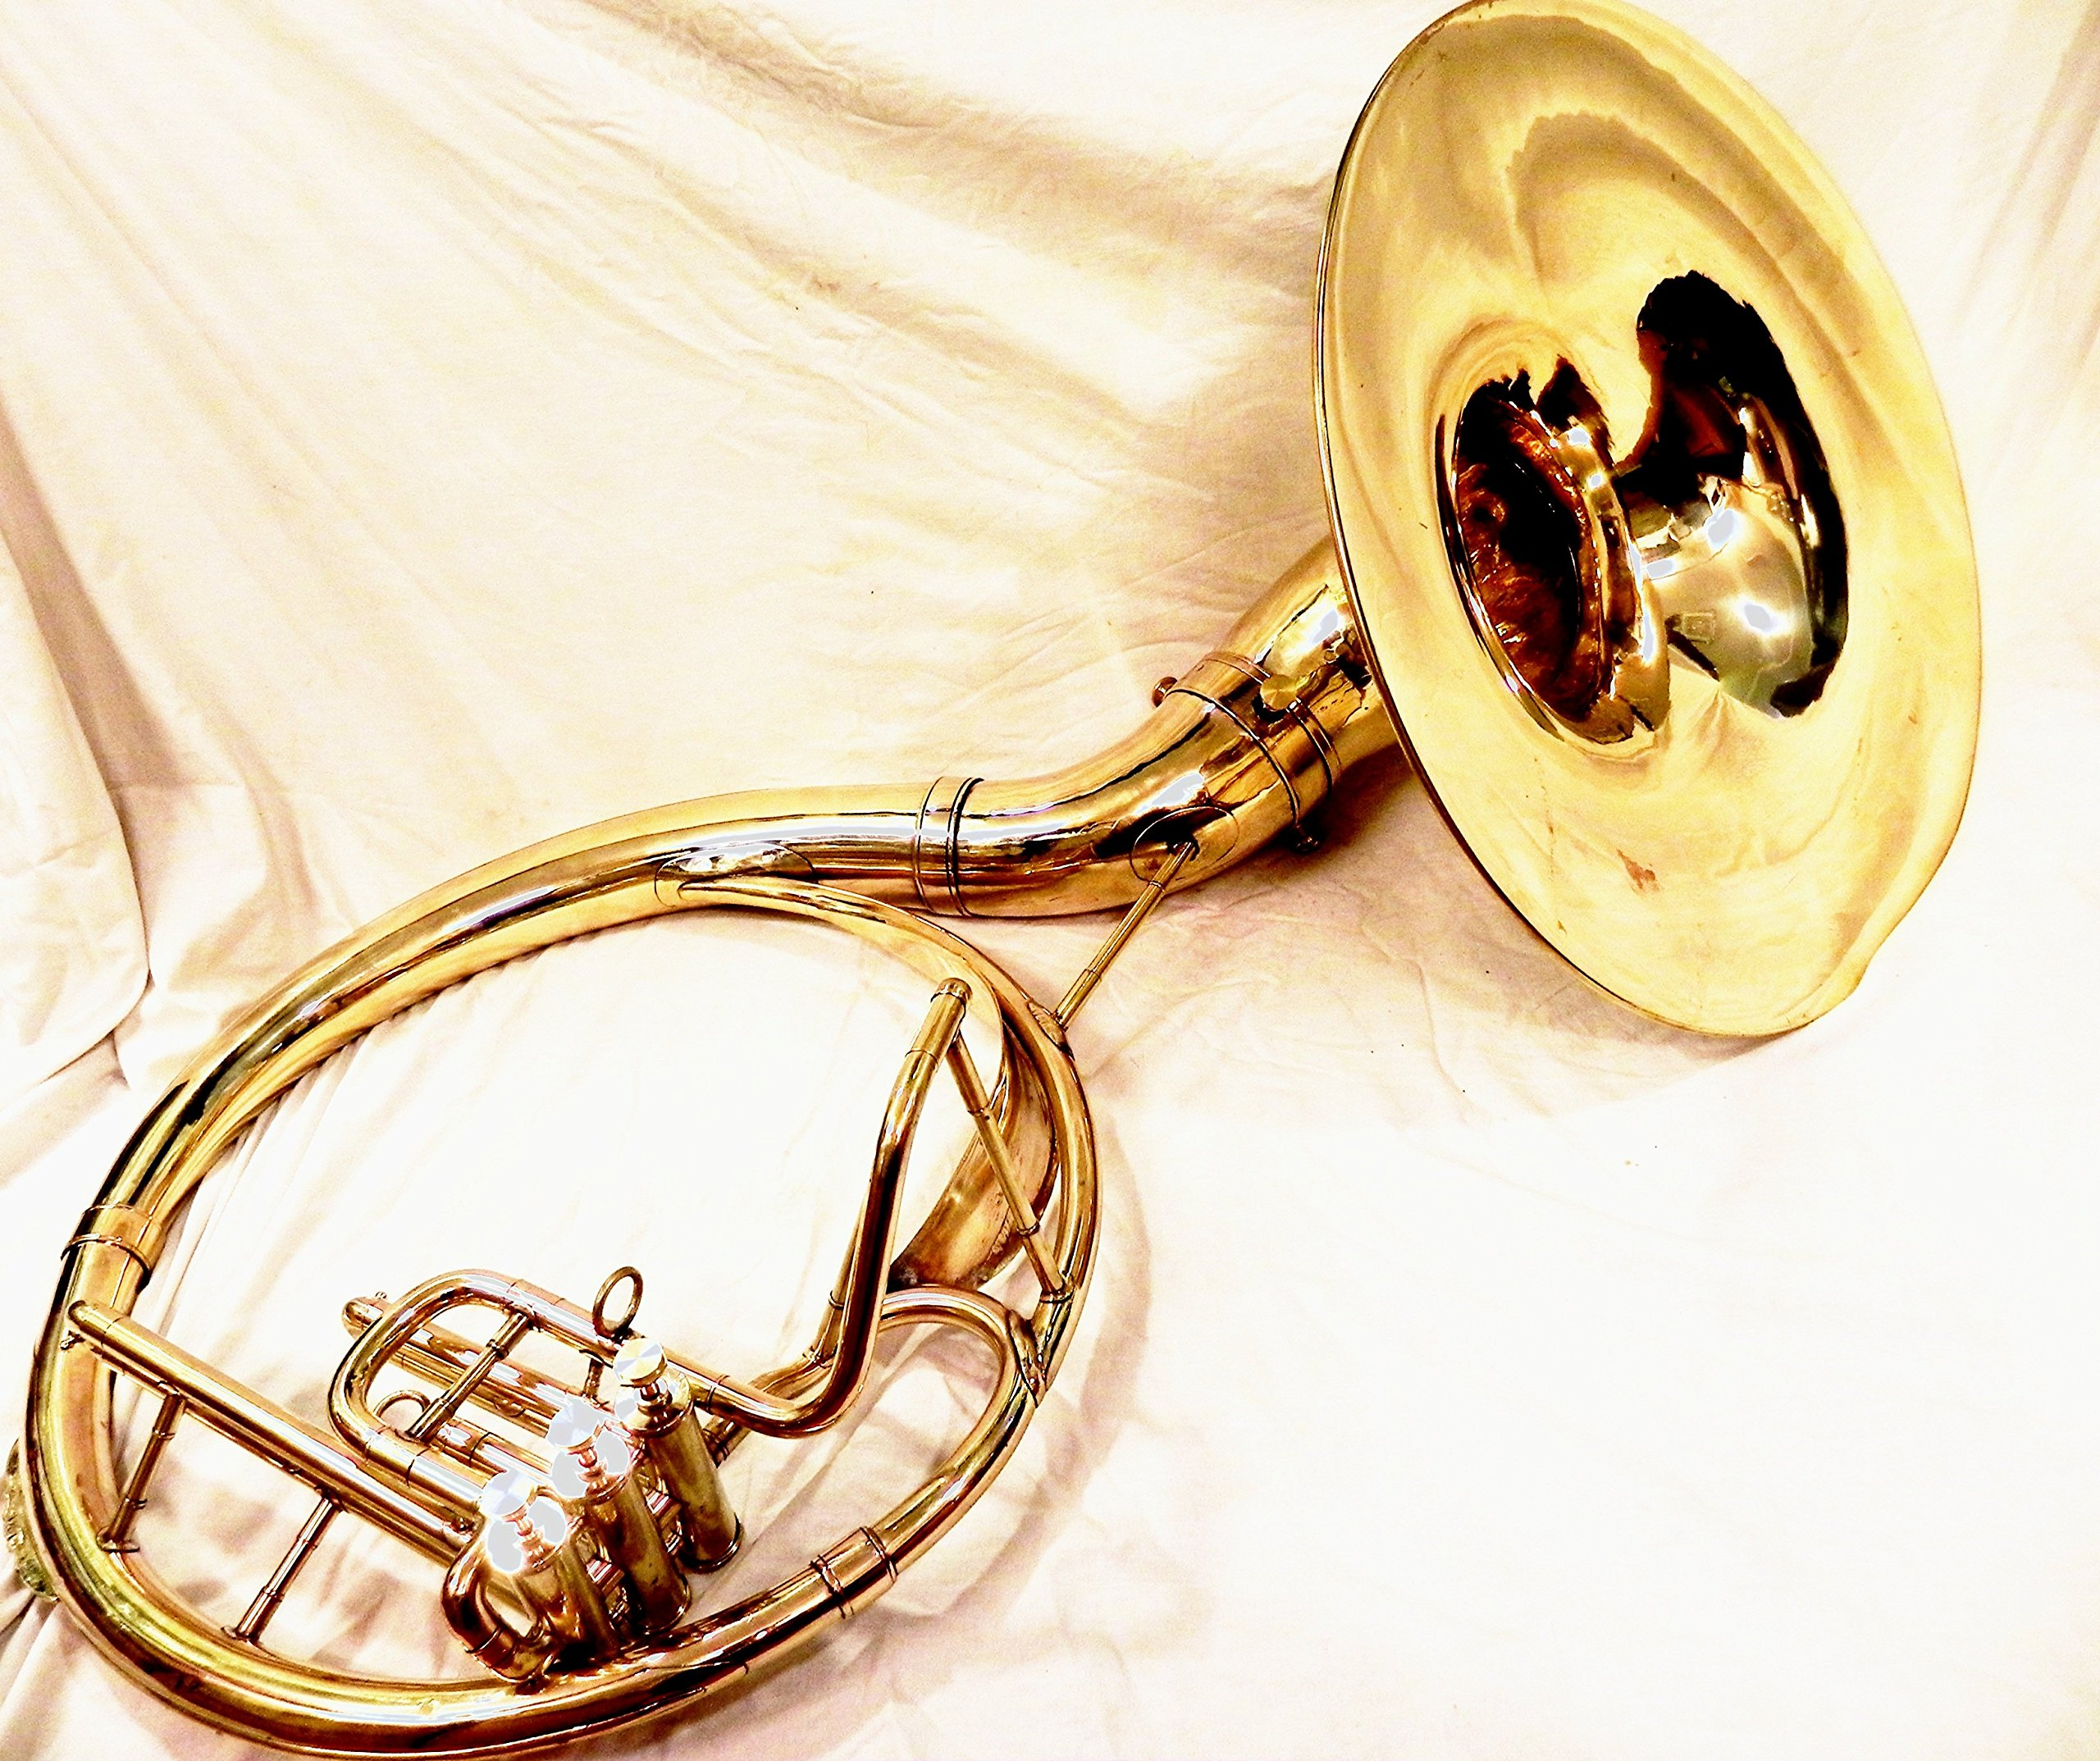 INDIAN HANDMADE BRASS FINISH 22''SOUSAPHONE BRASS MADE TUBA MOUTH PIECE WITH BAG by I/M